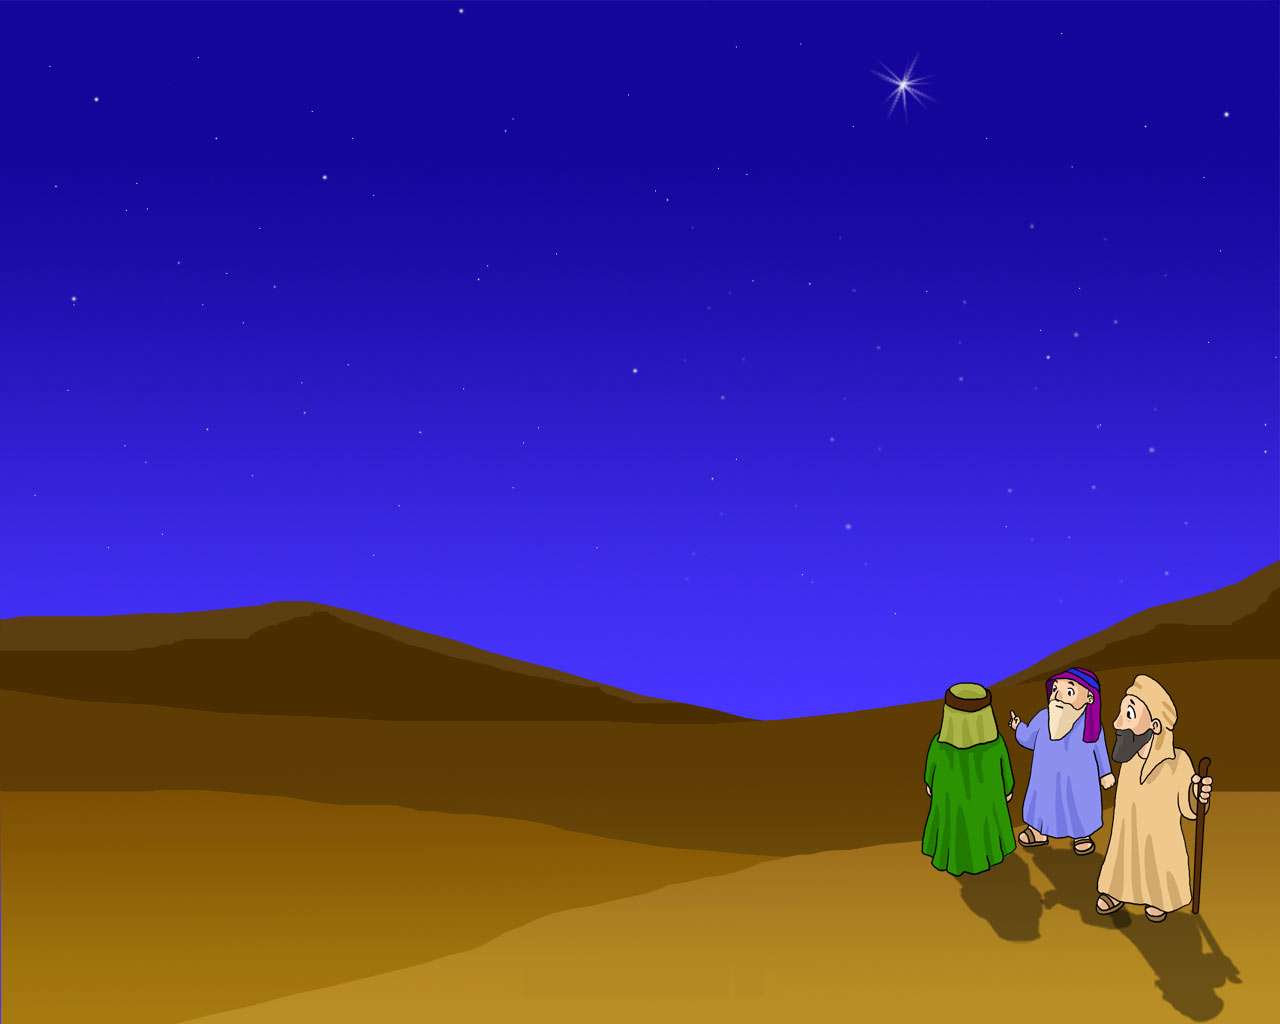 Christian Wise People PPT Backgrounds